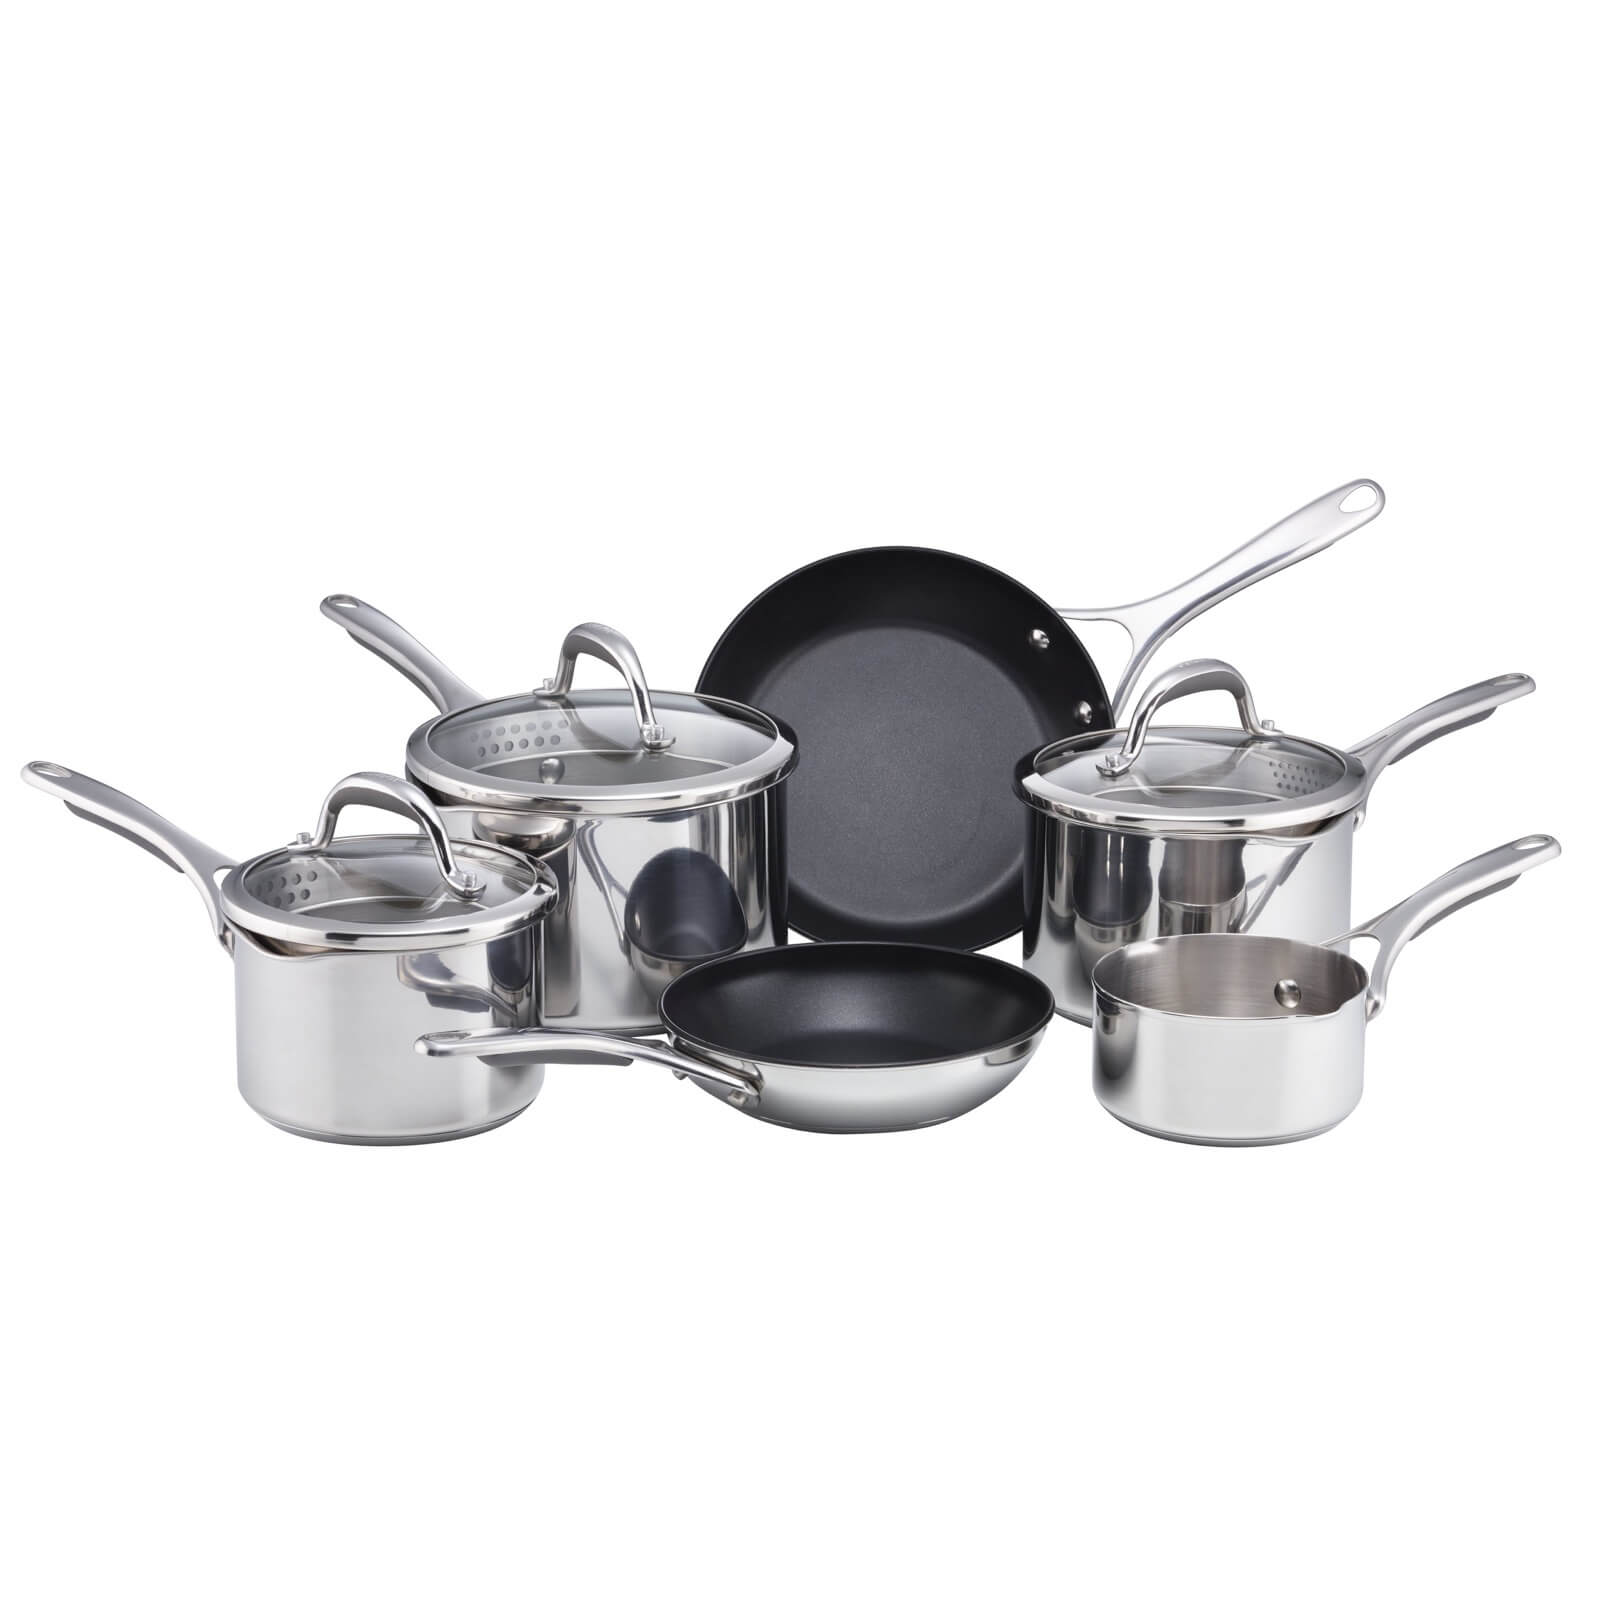 Meyer Select Stainless Steel 6 Piece Cookware Set